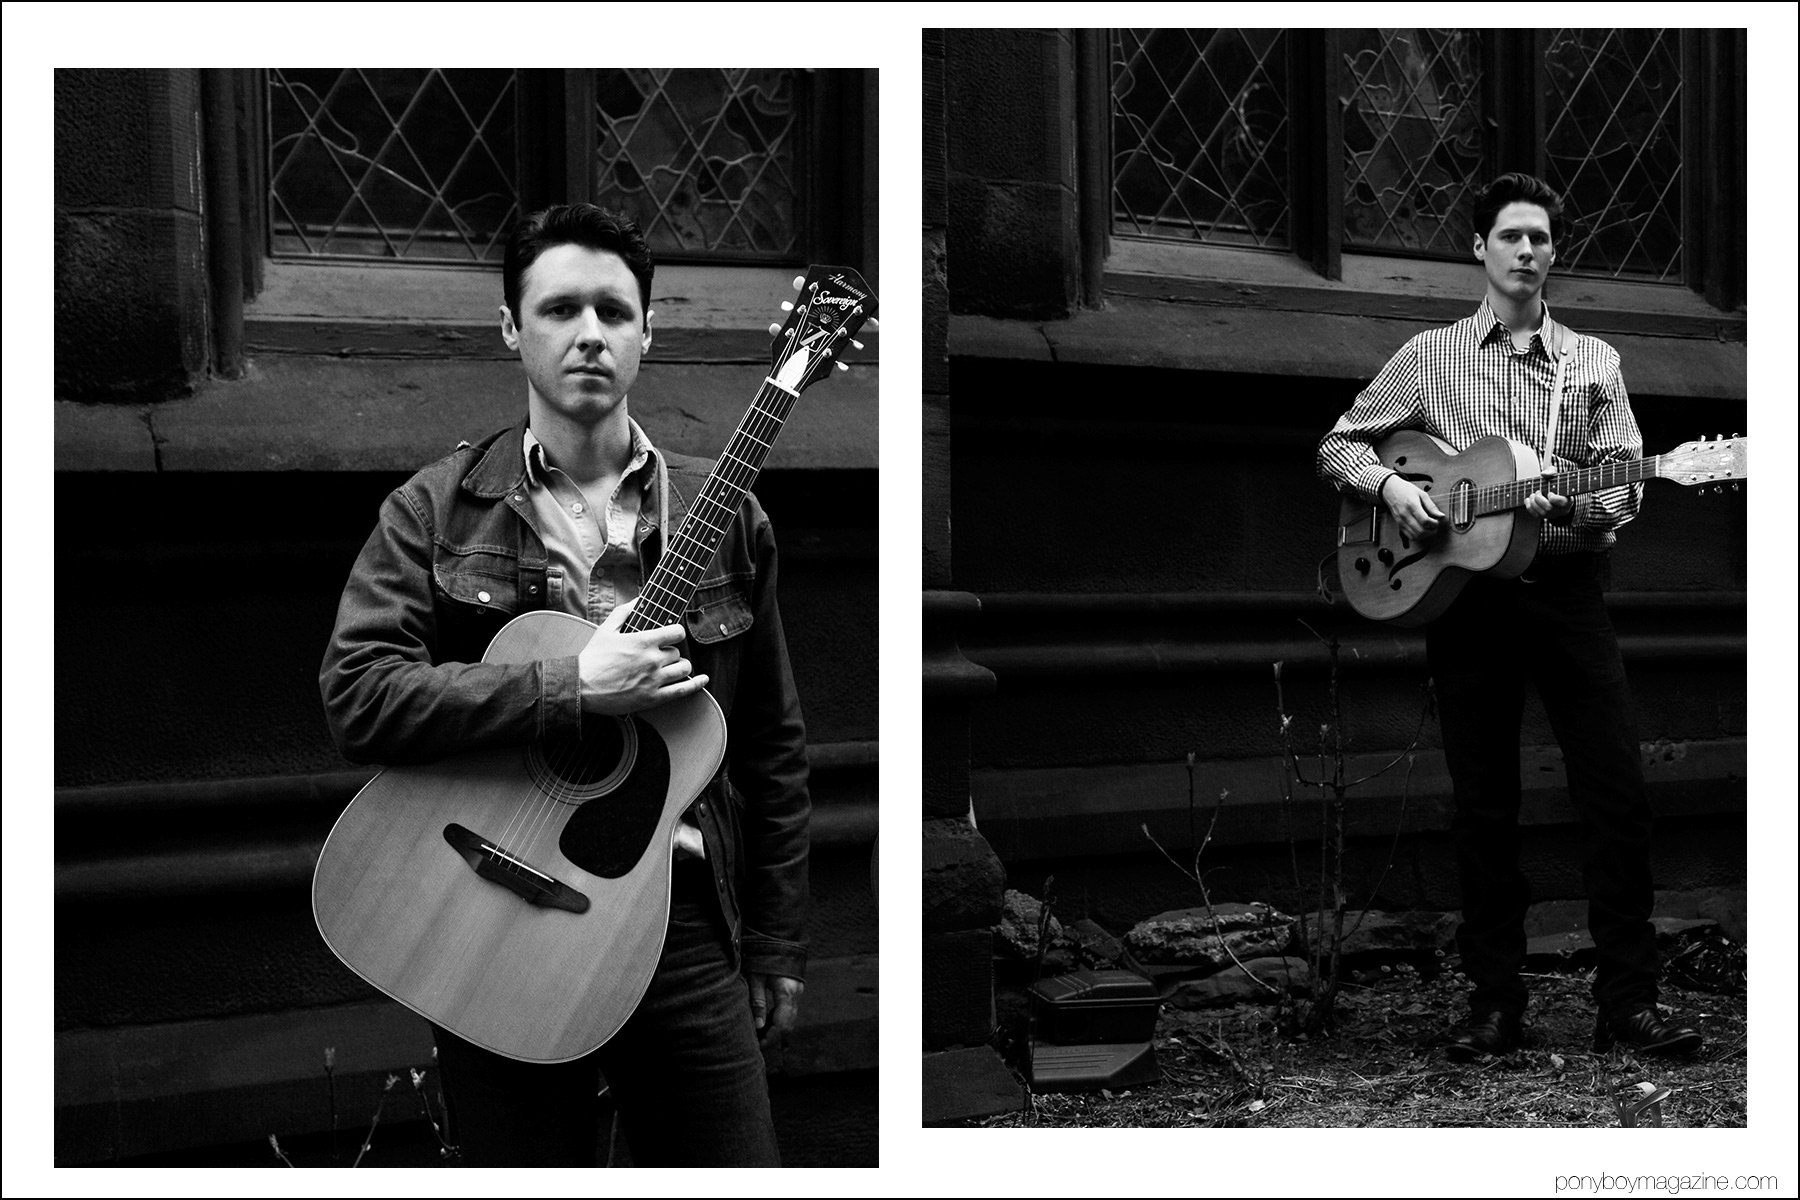 Musicians Page Burkum and Jack Torrey, from the Cactus Blossoms, photographed in New York for Ponyboy magazine by Alexander Thompson.